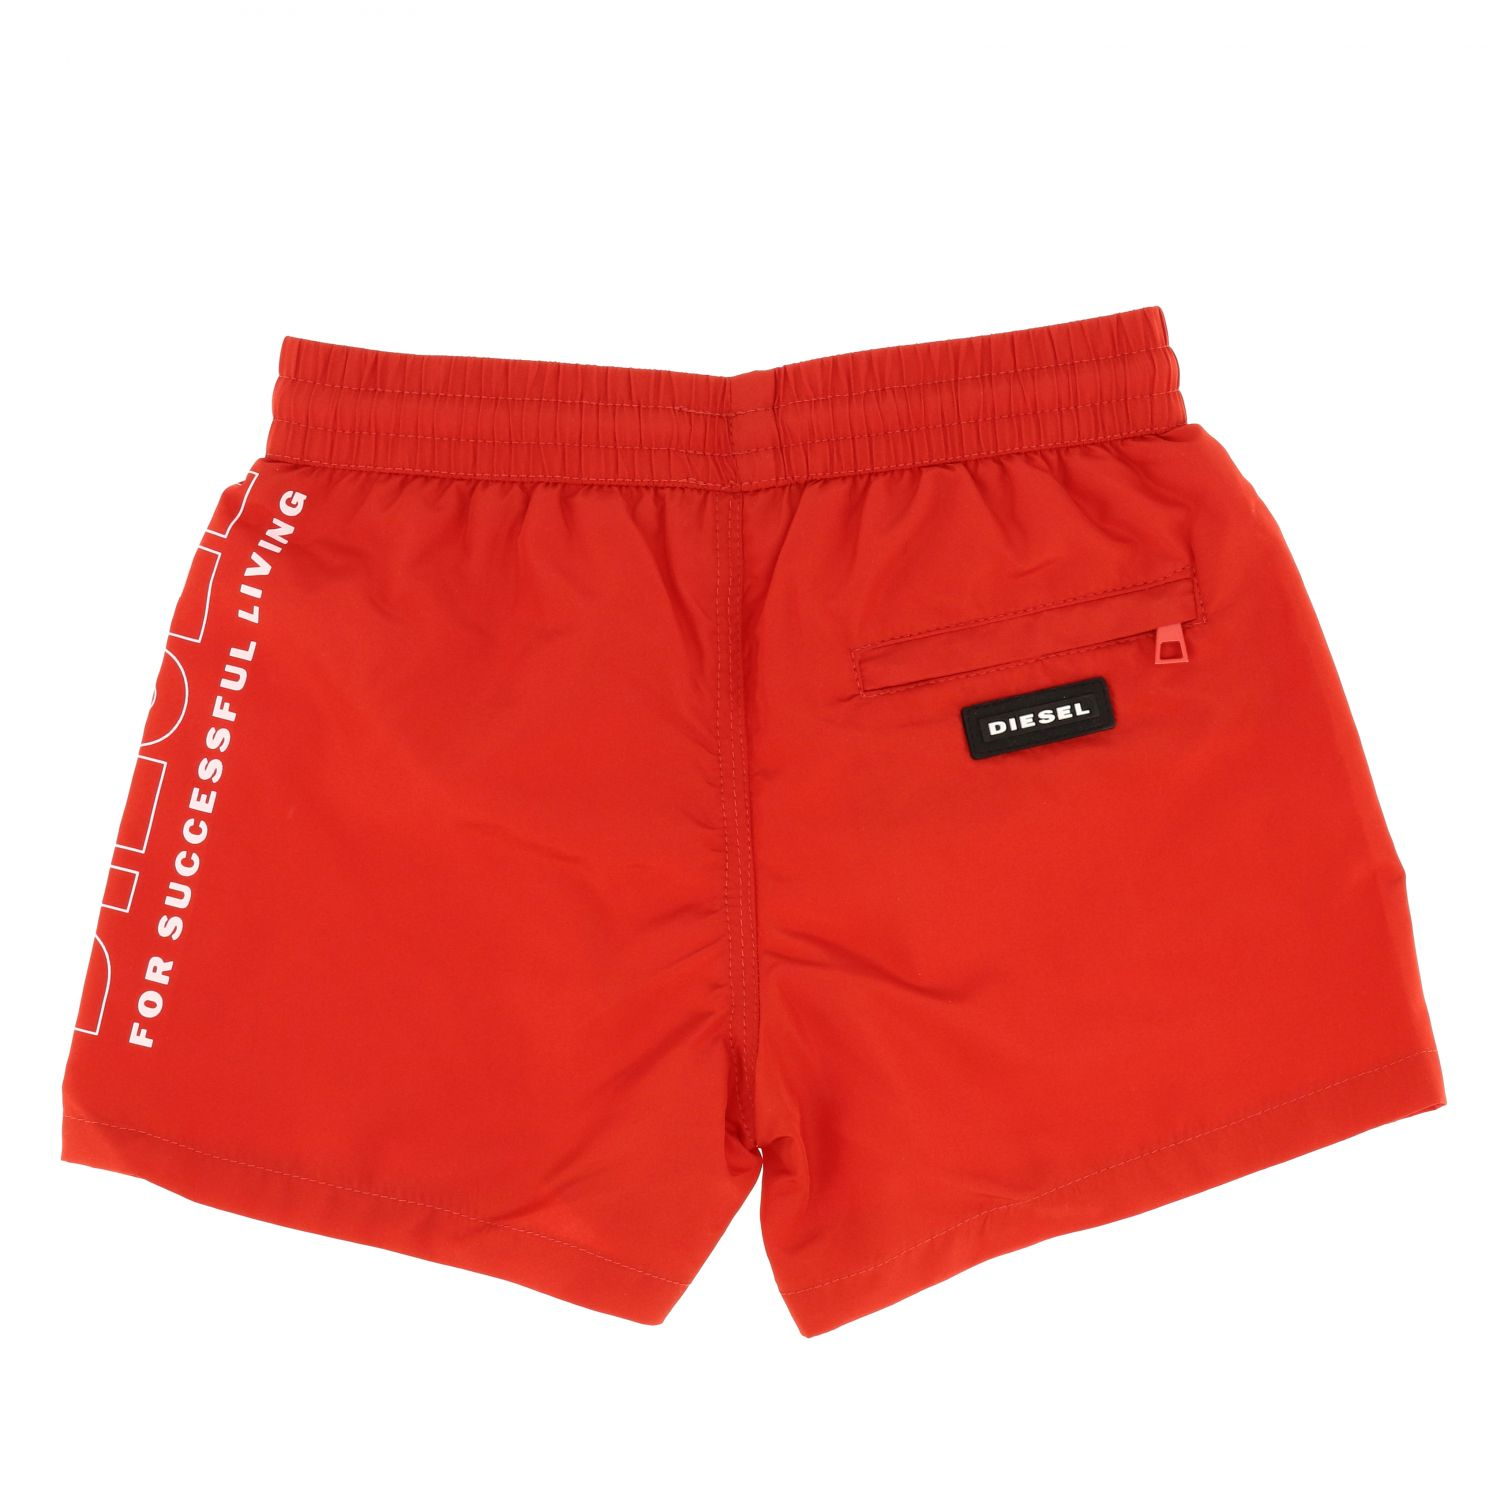 Diesel boxer swimsuit with drawstring and logo red 2